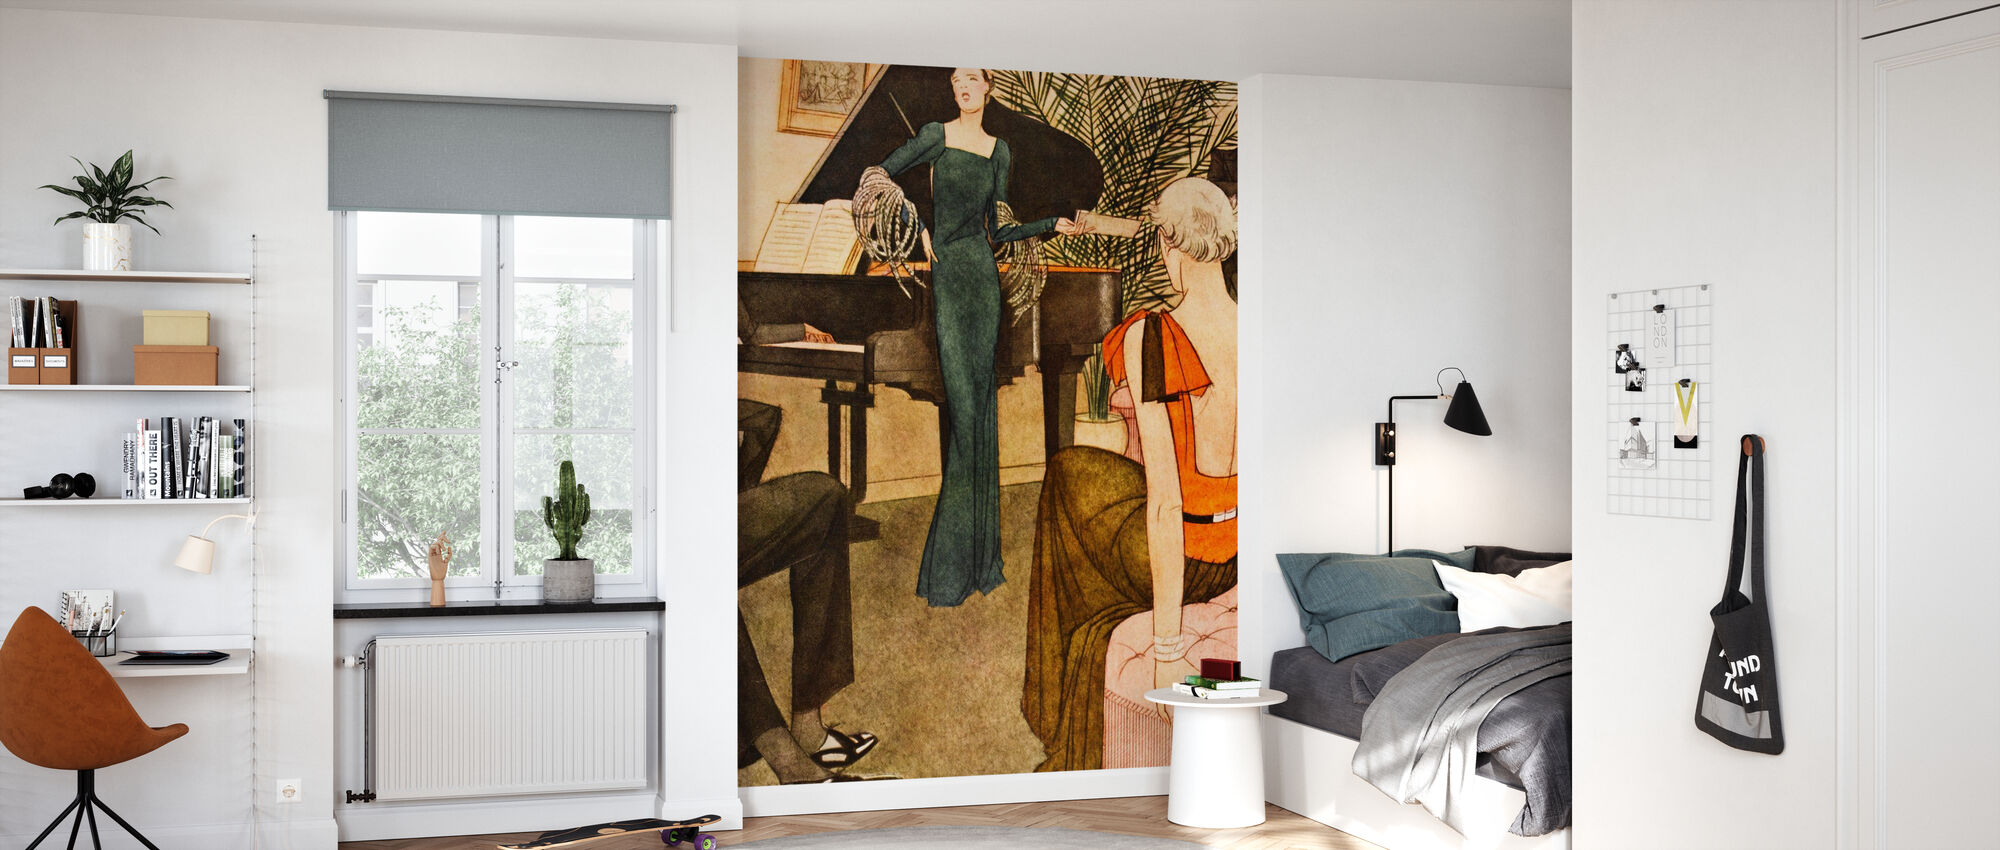 Lady Amuses her Guests, National Magazines - Wallpaper - Kids Room